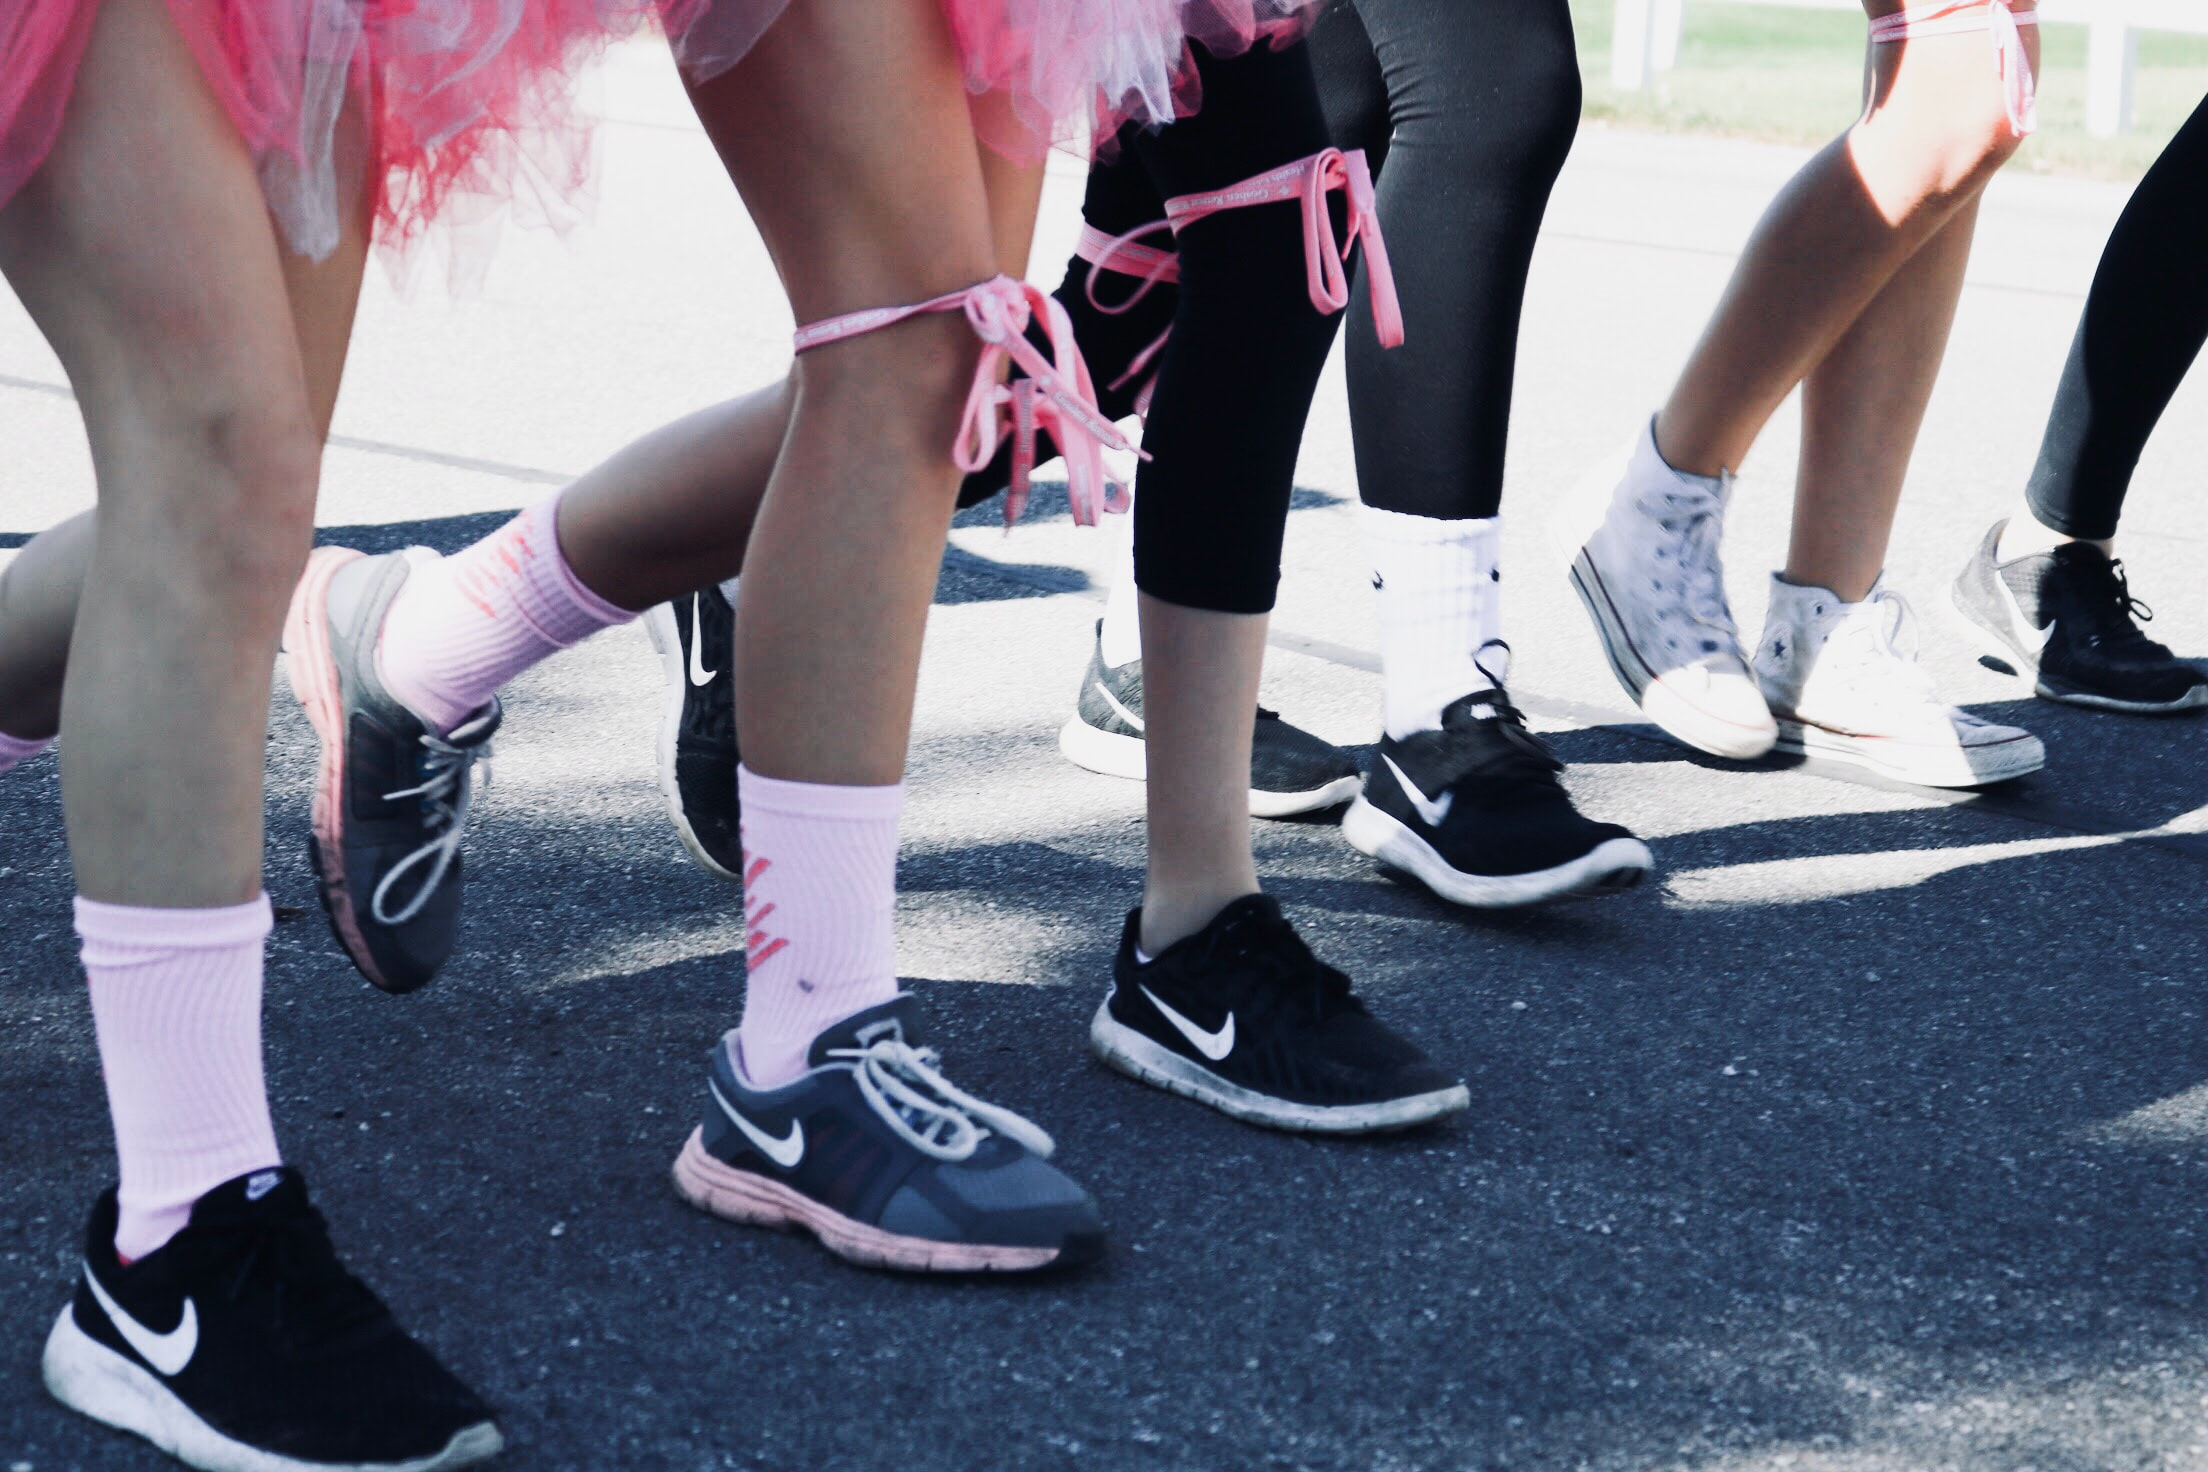 marathon for cancer related charity organisation